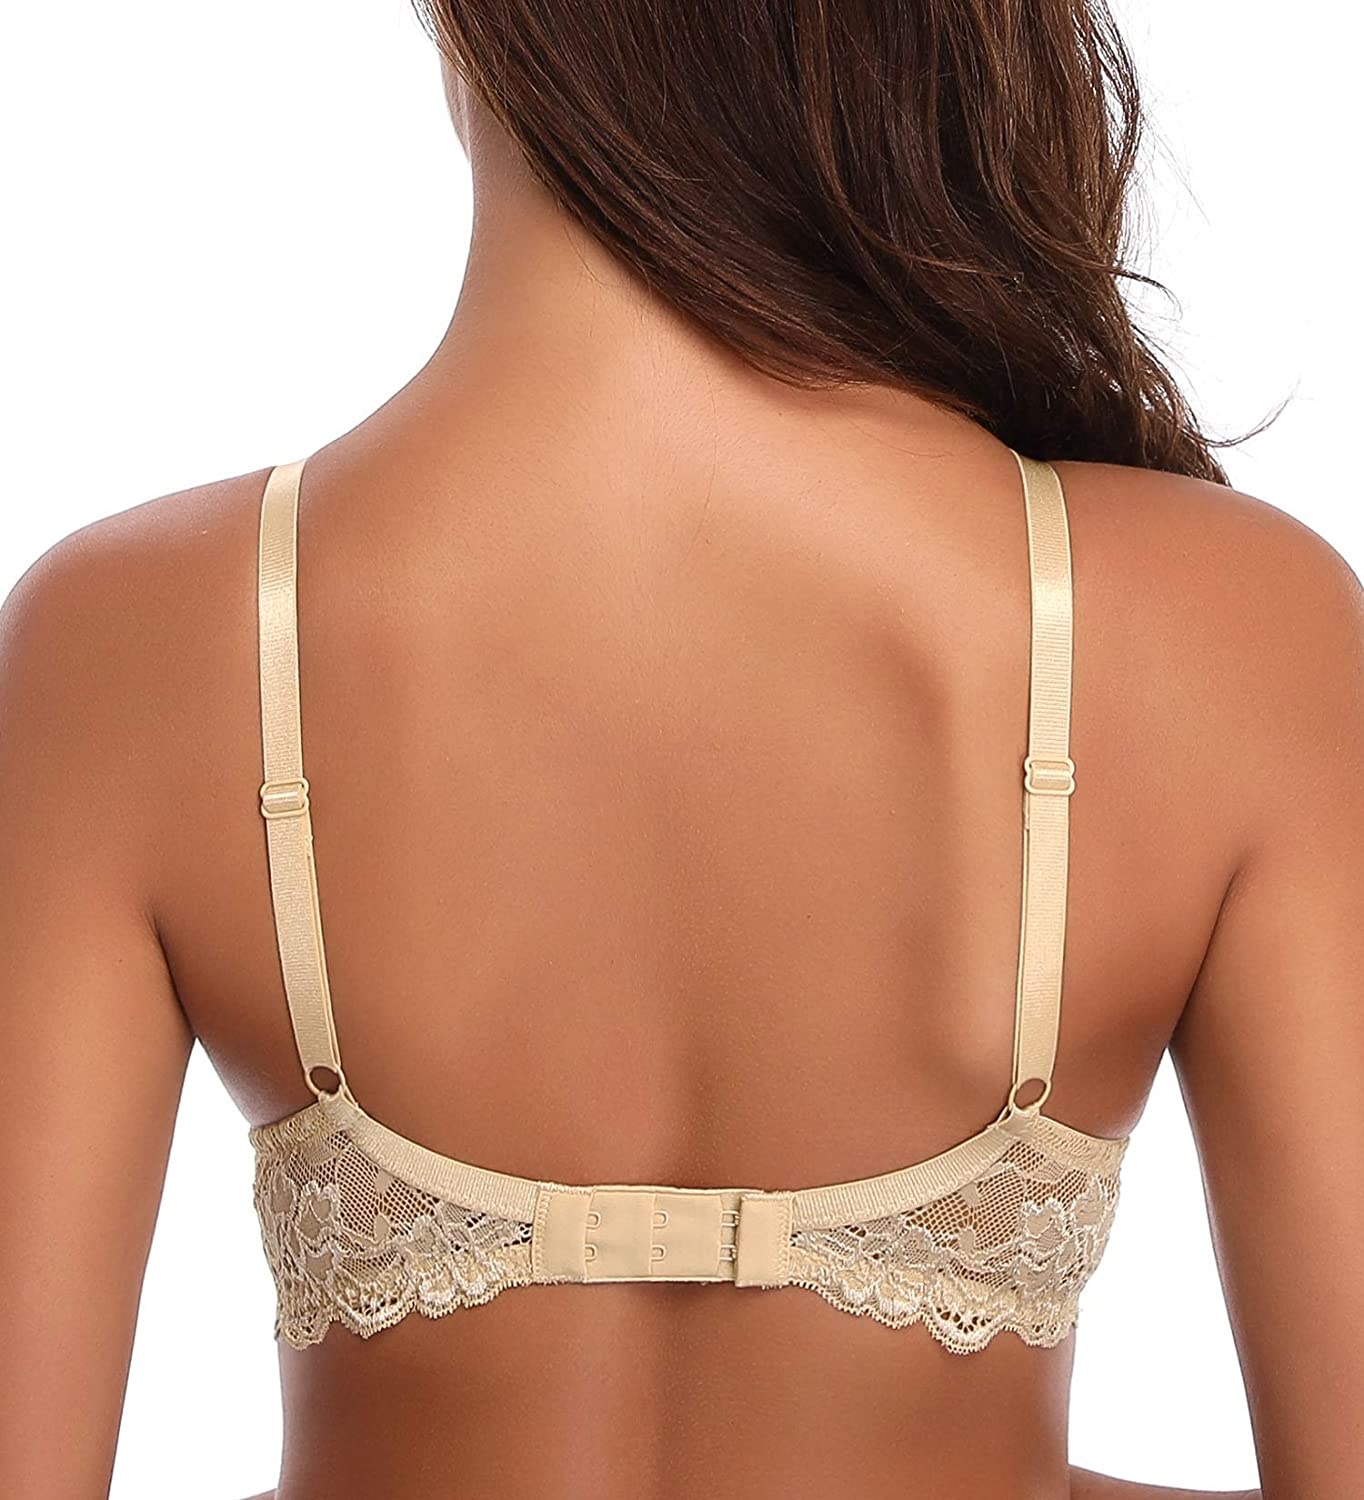 back view of Deyllo Women's Push Up Lace Bra Comfort Padded Underwire Bra Lift Up Add One Cup